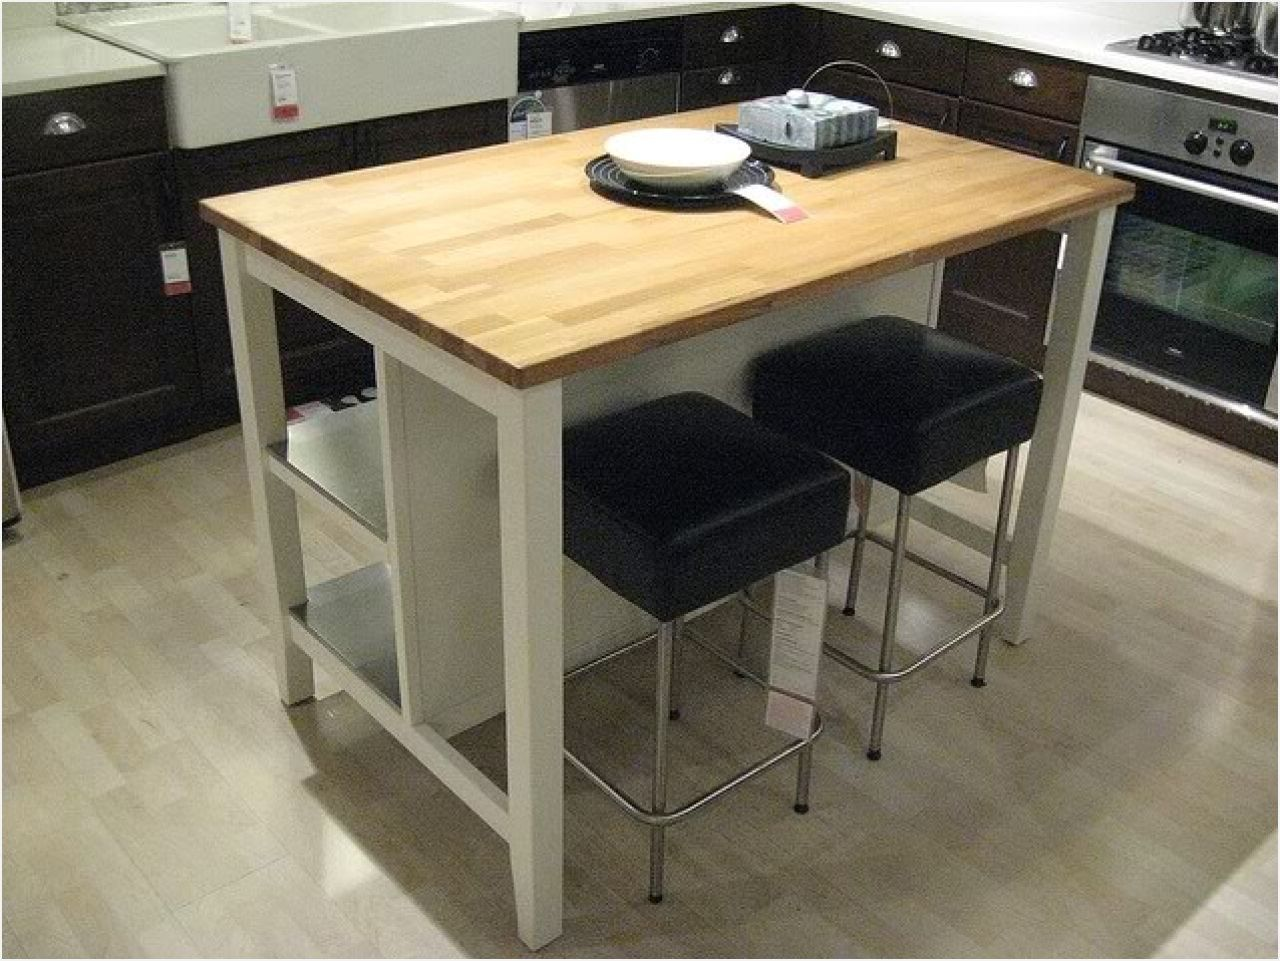 42 Inexpensive Ikea Kitchen Islands With Seating Ideas With Images Moveable Kitchen Island Ikea Kitchen Island Small Kitchen Tables